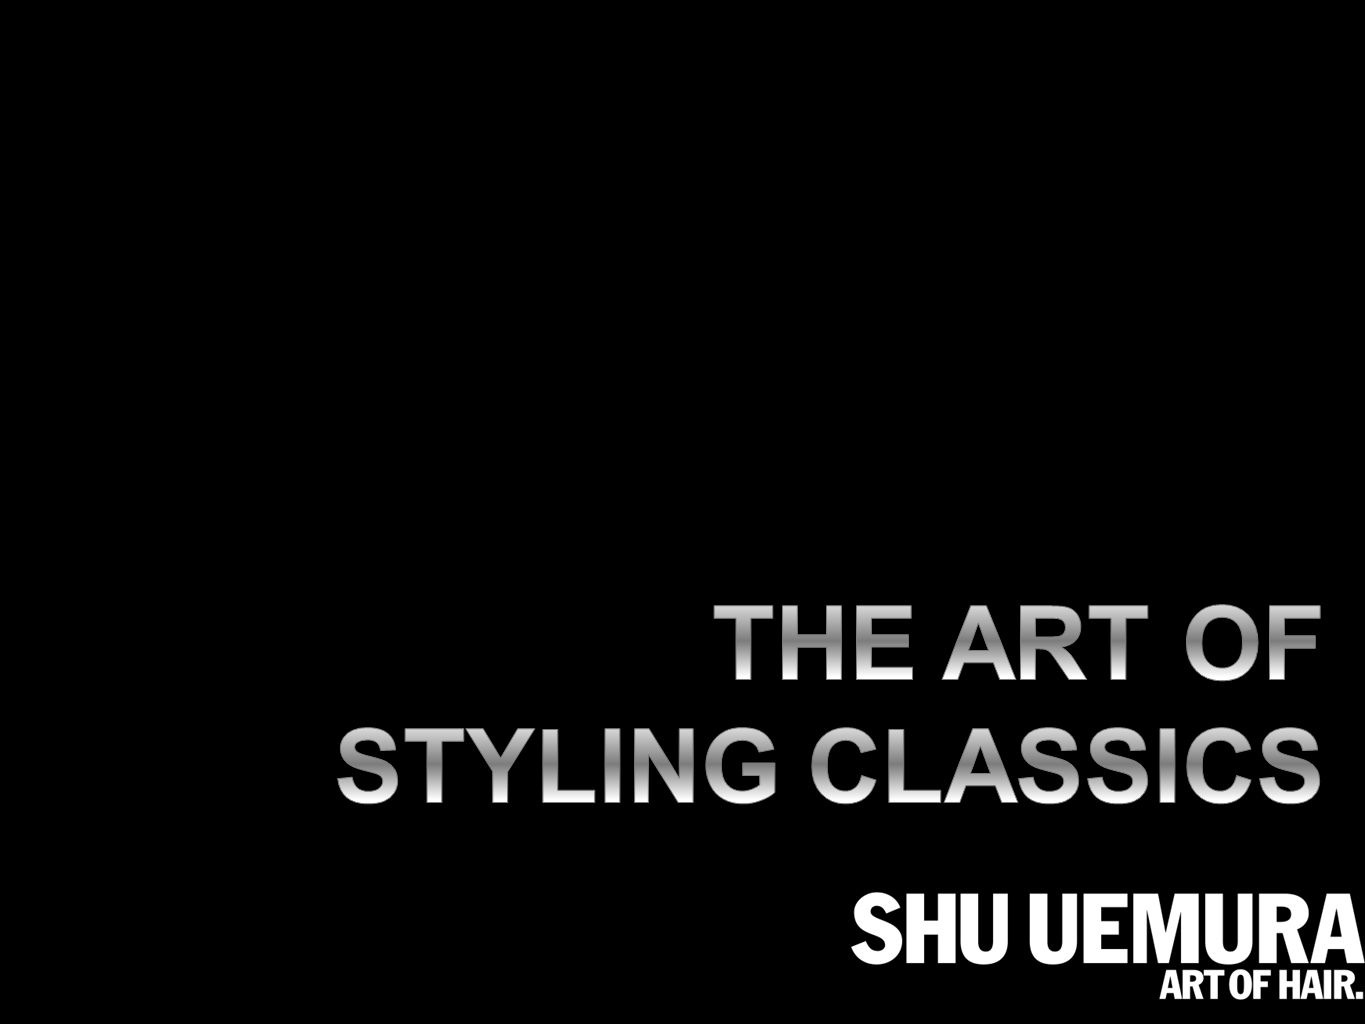 DURING HIS MAKE-UP ARTIST CAREER MR SHU UEMURA HAS BEEN THE EPITOME OF TEXTURE PASSIONATELY AND INSISTENTLY, MR SHU UEMURA CHALLENGED HIMSELF TO EXPLOIT THE INFINITE POSSIBILITES WHEN COMBINING VERSATILE TEXTURES AND VARIED EFFECTS TODAY, THIS EXPLORATION OF TEXTURE IS TAKEN FURTHER, TO OFFER AN INSPIRATIONAL, TREND-LEAD CATALOGUE, ADOPTED BY PROFESSIONNALS AND RENOWNED WORLDWIDE